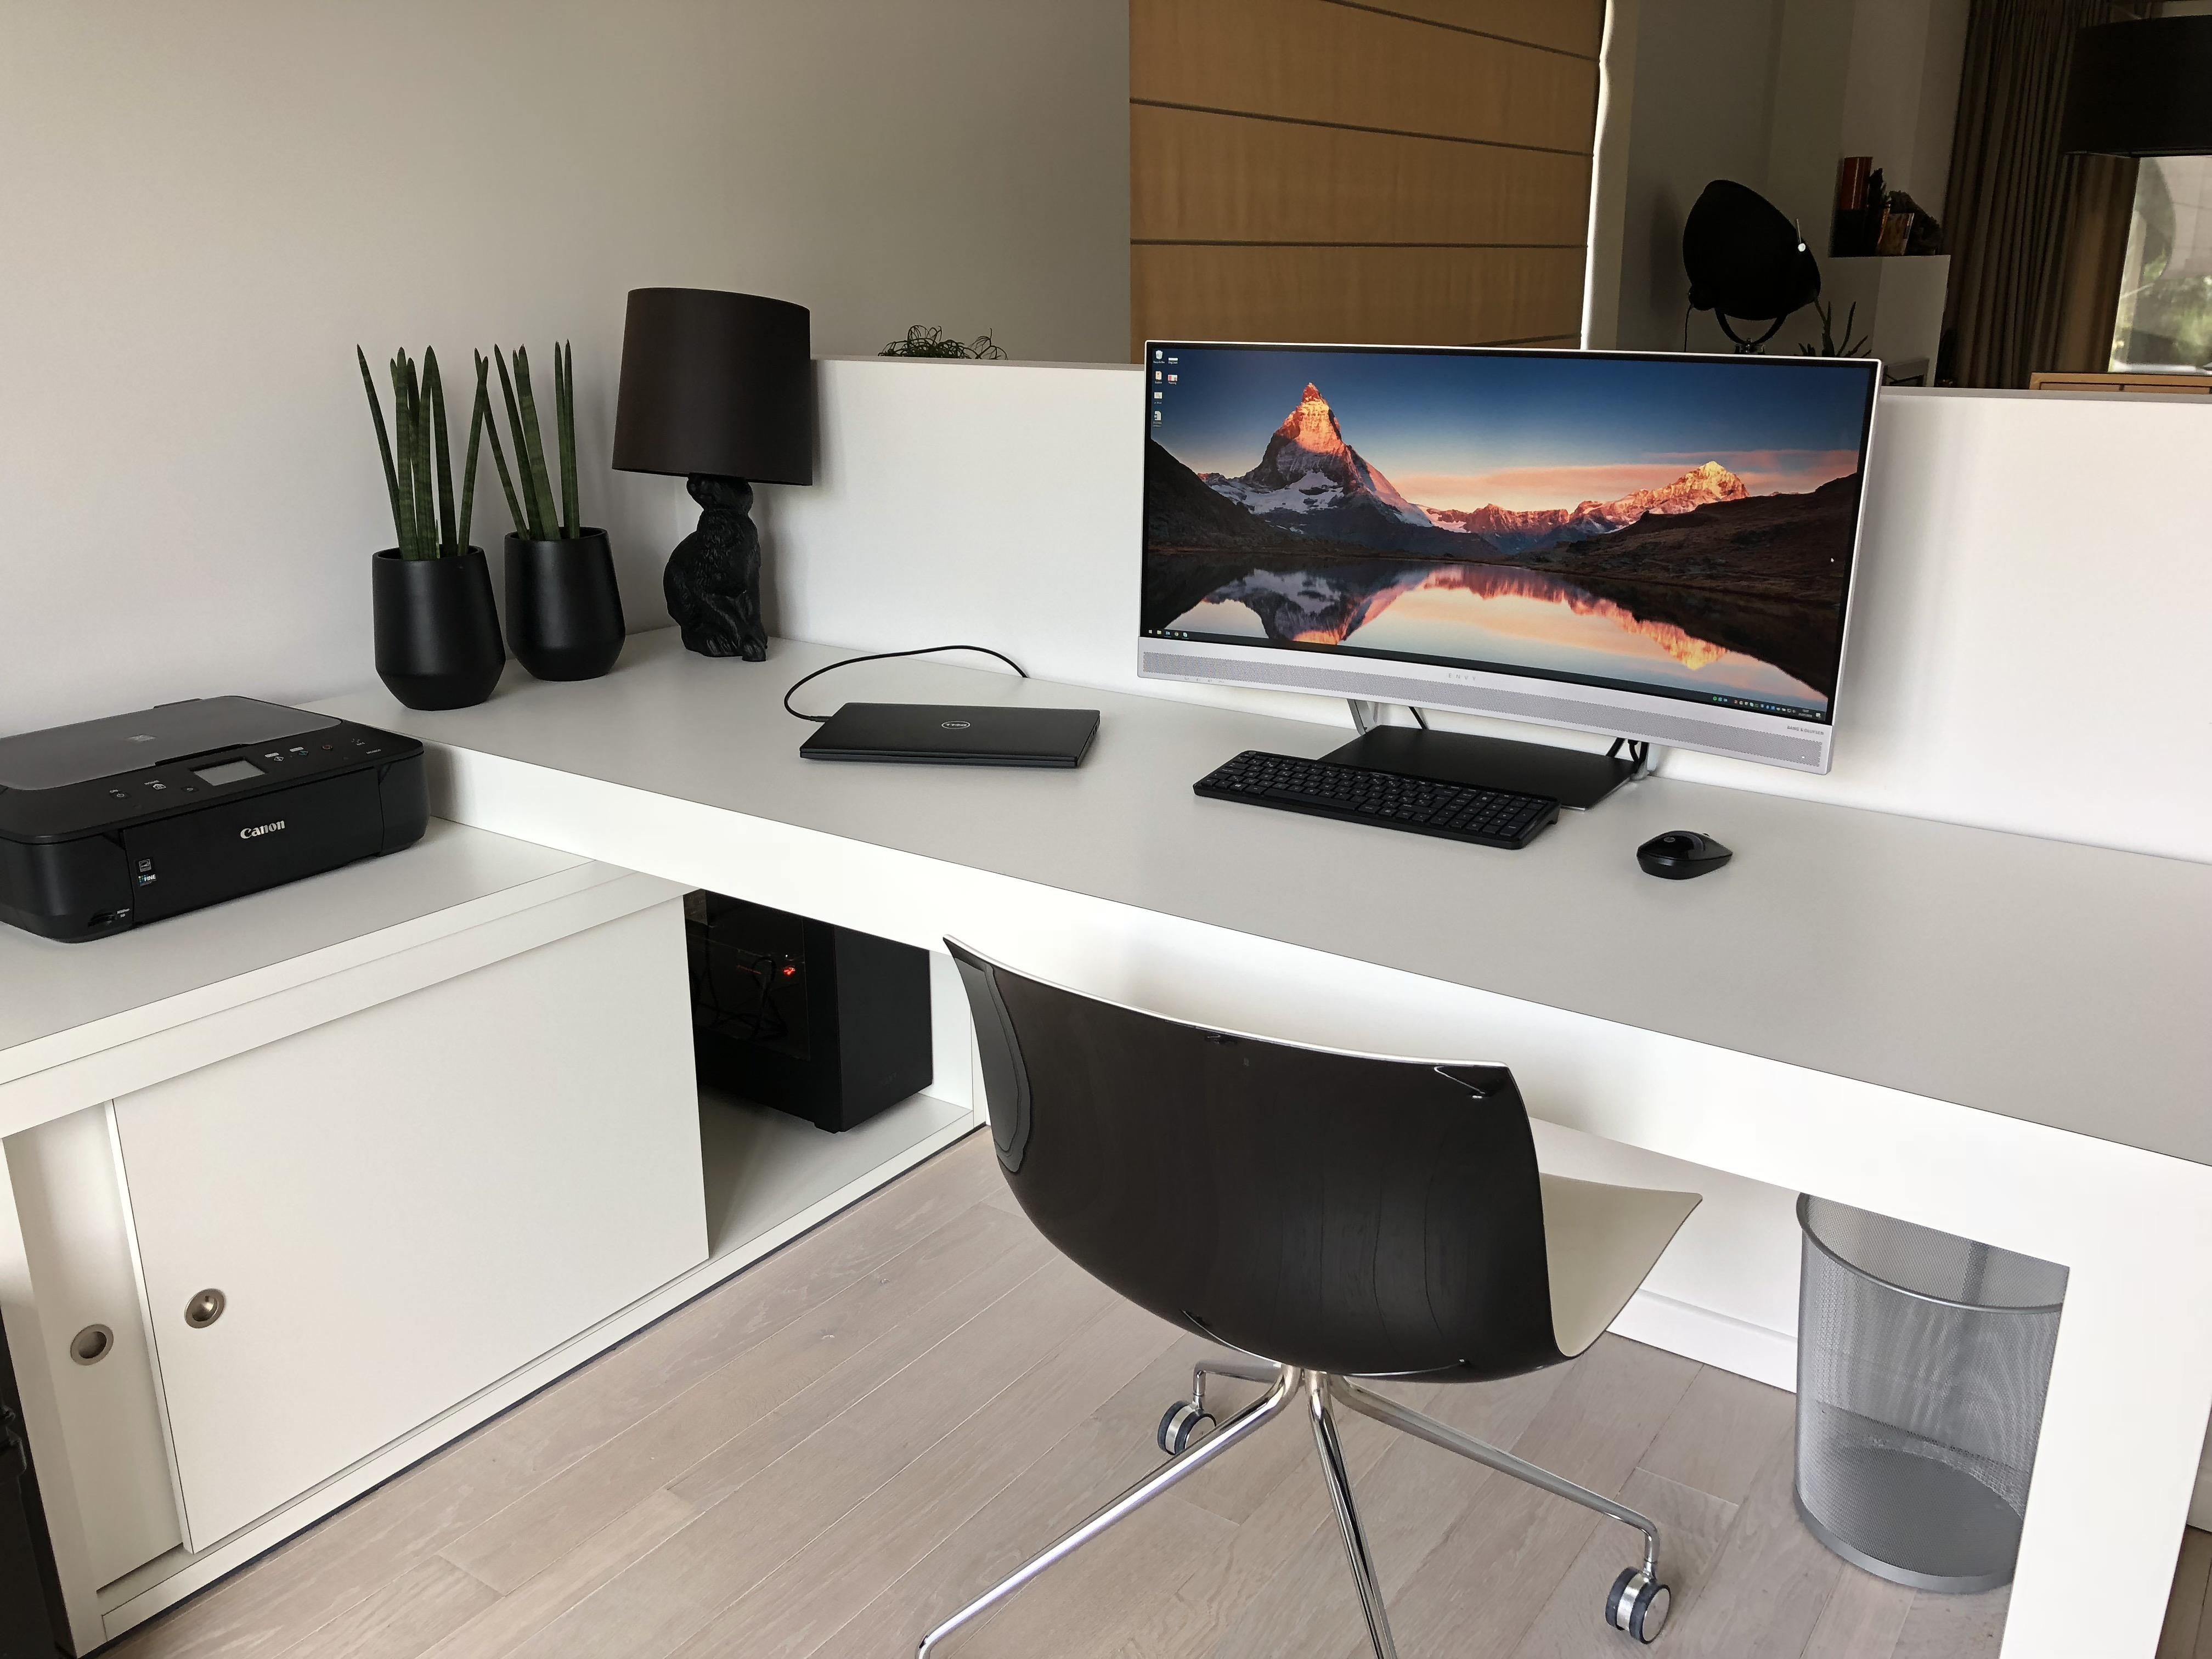 My Clean Home Office Gaming Setup Battlestations Home Office Setup Bedroom Setup Office Setup